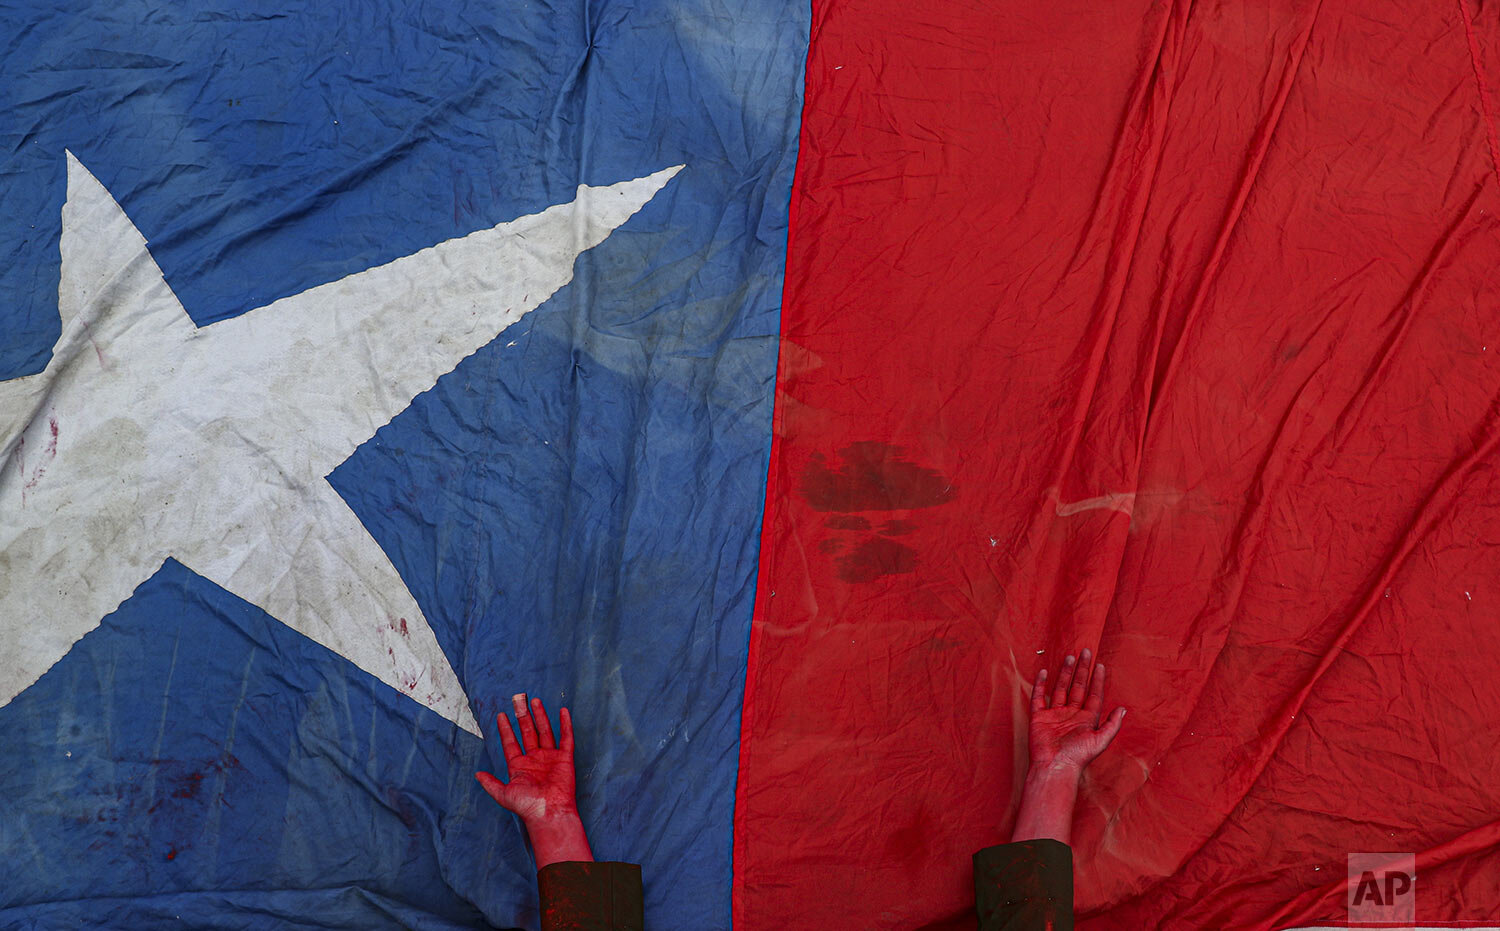 A performer places her hands, covered in red paint to symbolize blood, on a Chilean flag to honor protesters who have died amid days of demonstrations calling for better pay, pensions, schools, housing and medical care, among many other demands, during an anti-government music concert in Santiago, Chile, Sunday, Oct. 27, 2019. While most protests have been peaceful, some have devolved into riots and looting, and the government says at least 20 people have died. (AP Photo/Esteban Felix)